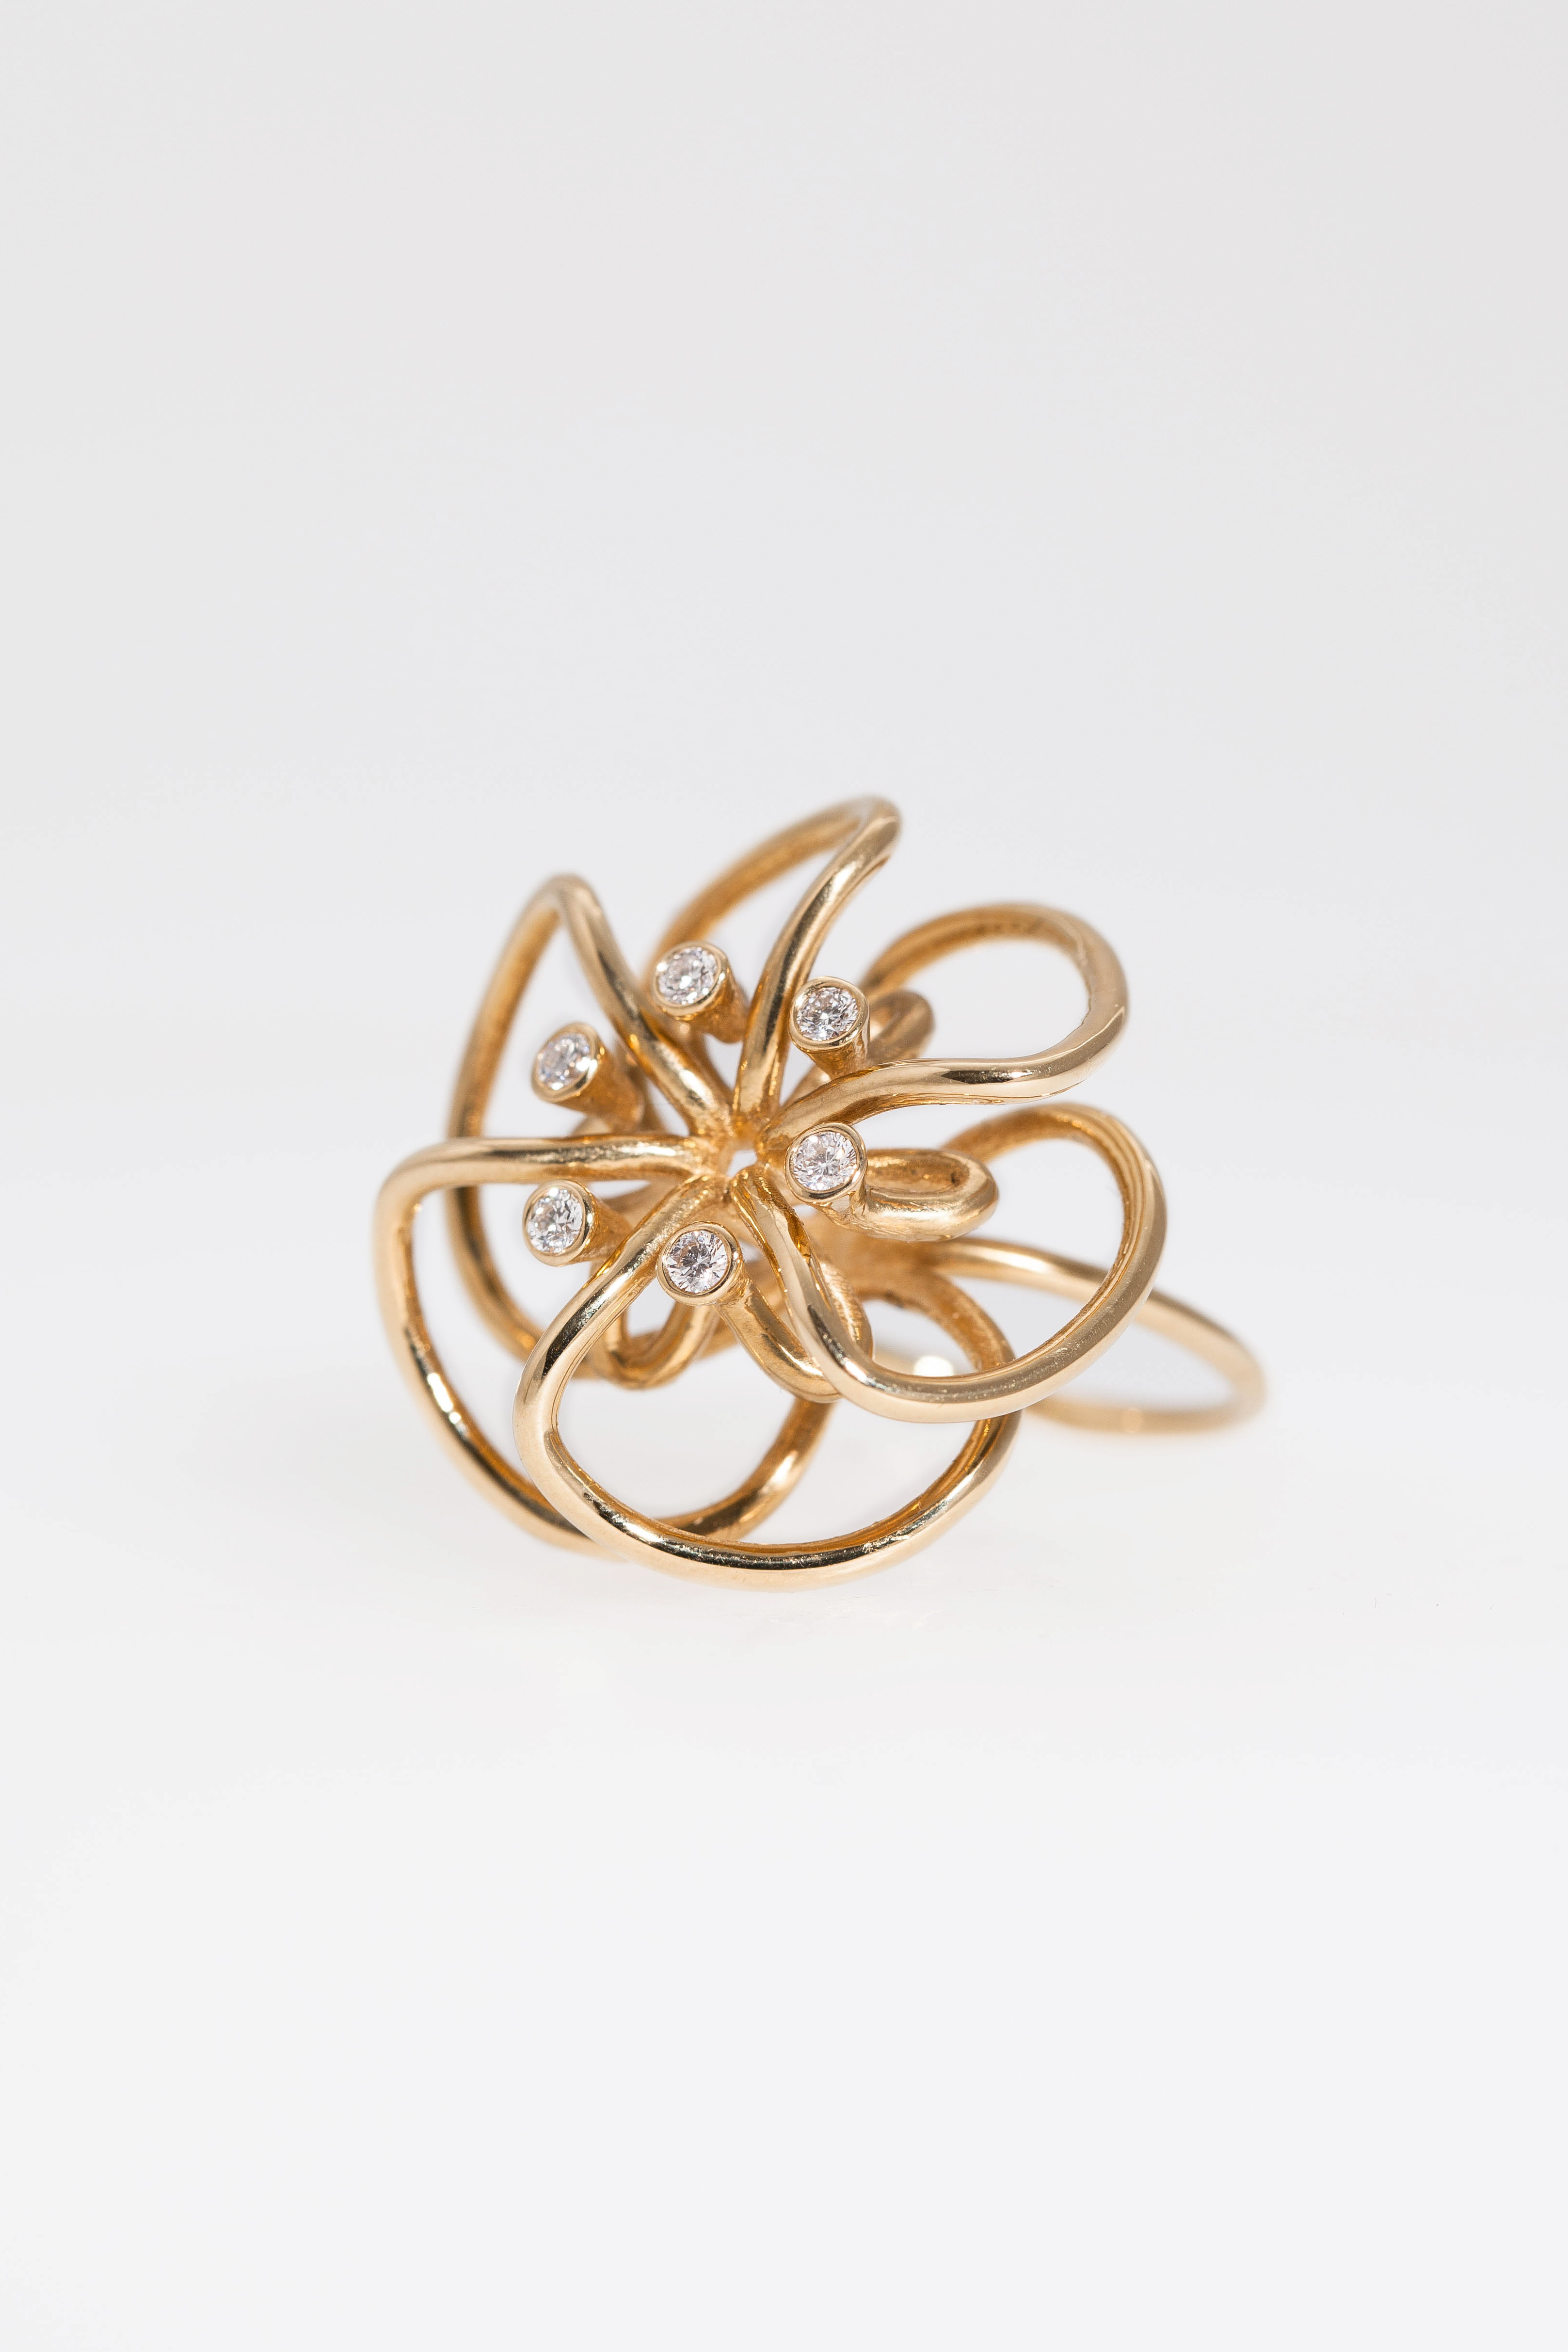 Laura_Bangert 18ct gold flower ring with